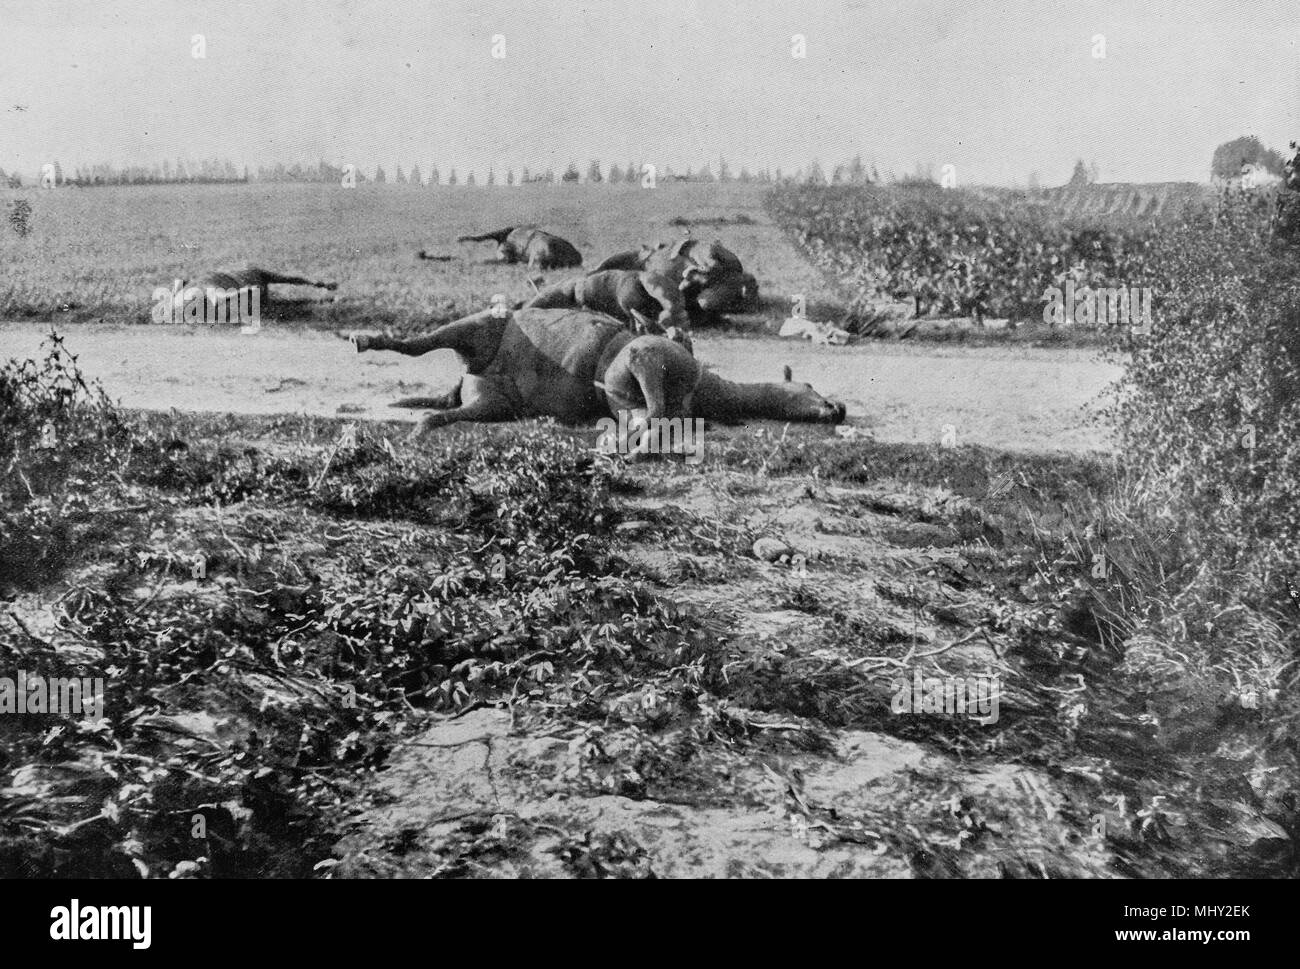 Horses killed during a battle along a road in Haelen, 1914, Belgium - Stock Image